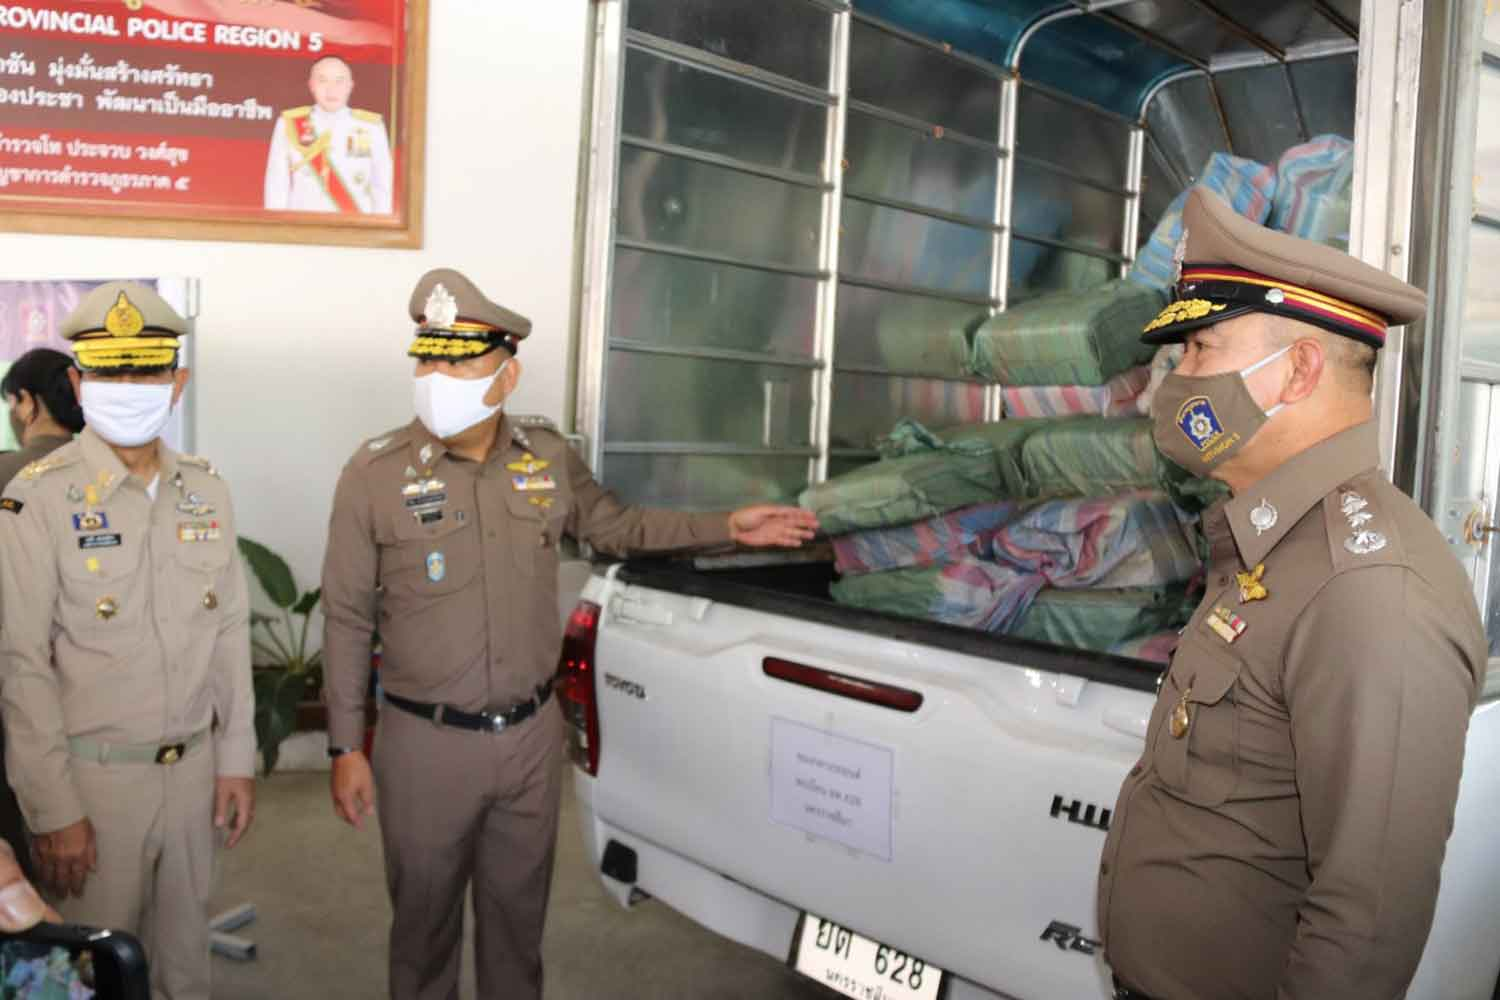 Bags containing about 17.8 million methamphetamine pills, seized in three actions, arrive at Provincial Police Region 5 headquarters in Chiang Mai. (Photo: Phanumet Tanraksa)